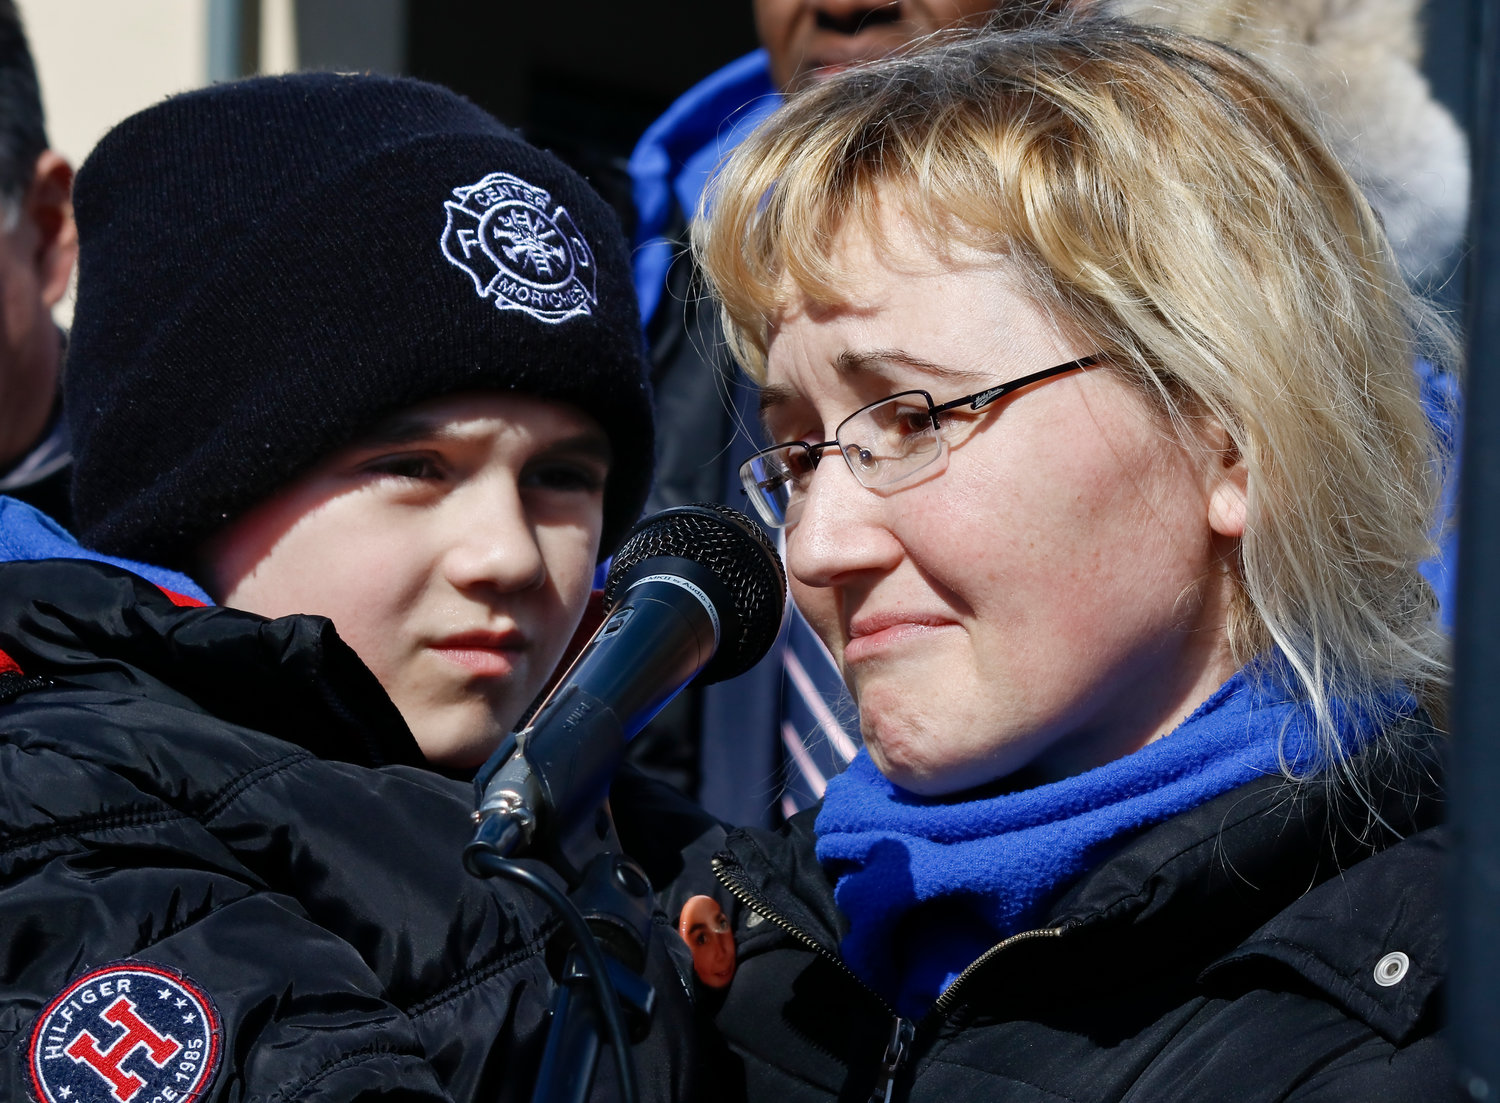 Thomas Valva's mother, Justyna Zubko-Valva, who lives in Valley Stream, tearfully delivered a speech thanking those in attendance at ceremony in March honoring of her late son. With her was Thomas's brother, Andrew.